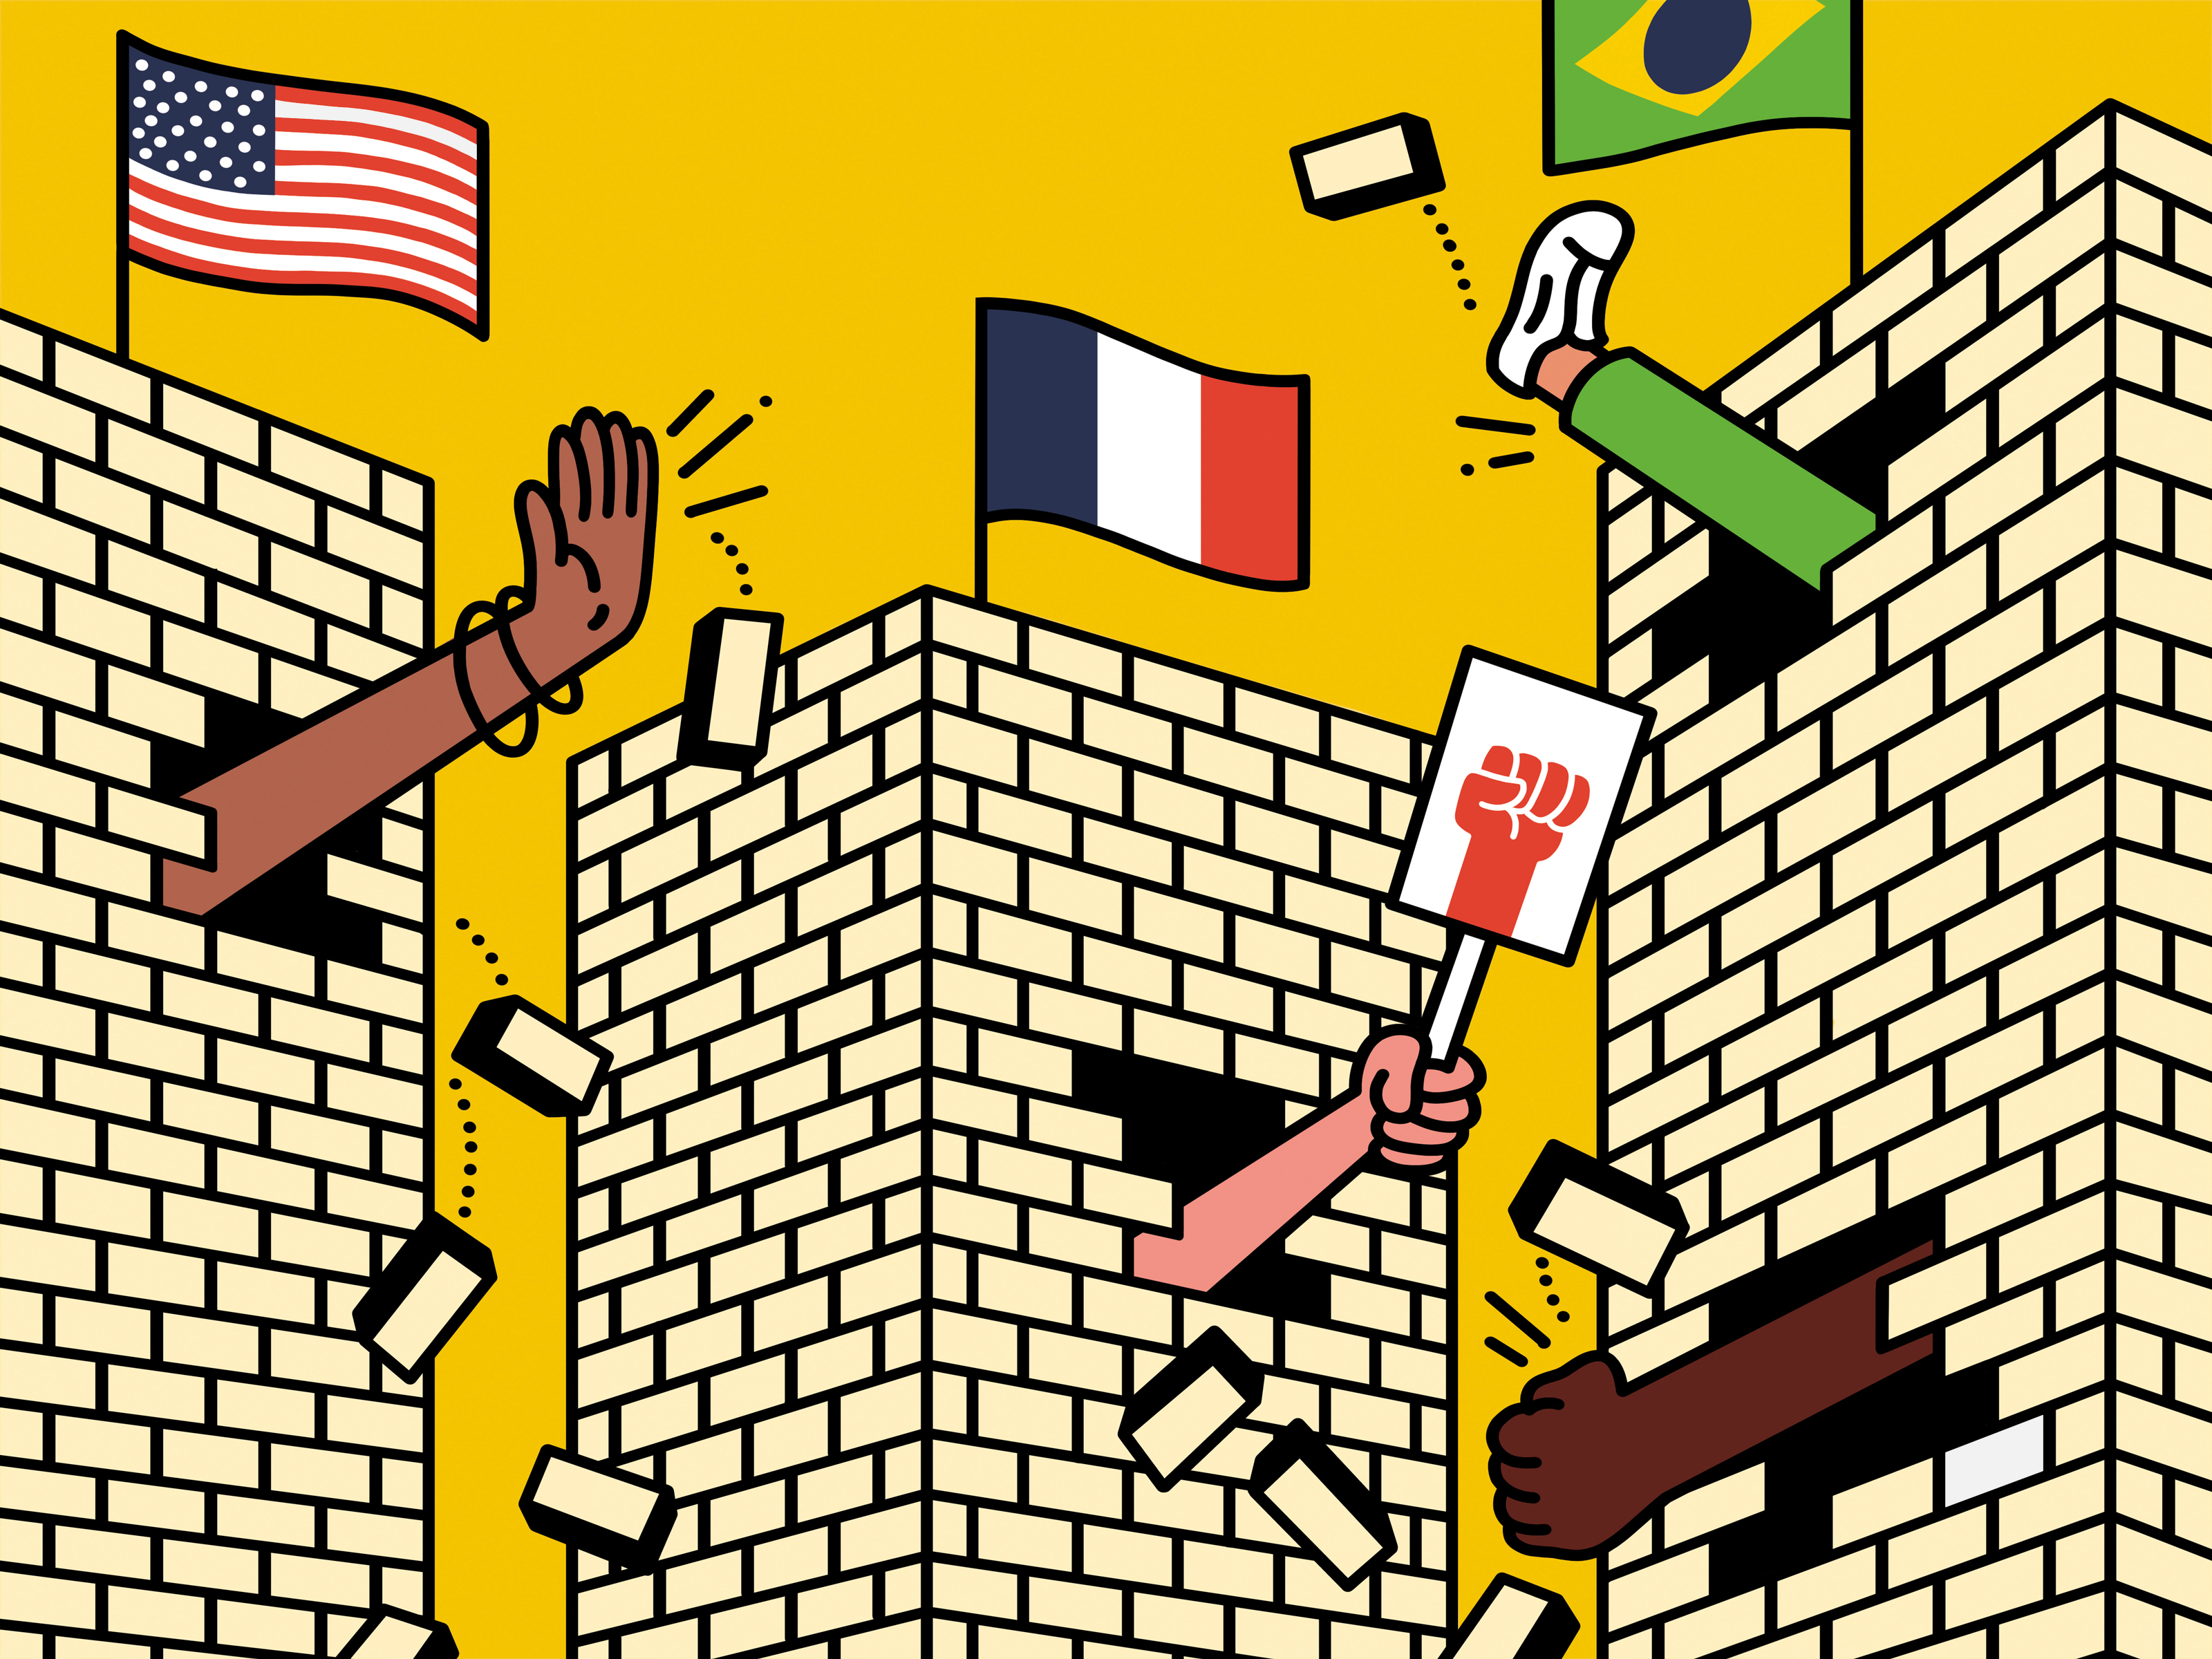 Illustration of brick walls with a number of national flags on them. Hands and feet are breaking through the walls in different directions.